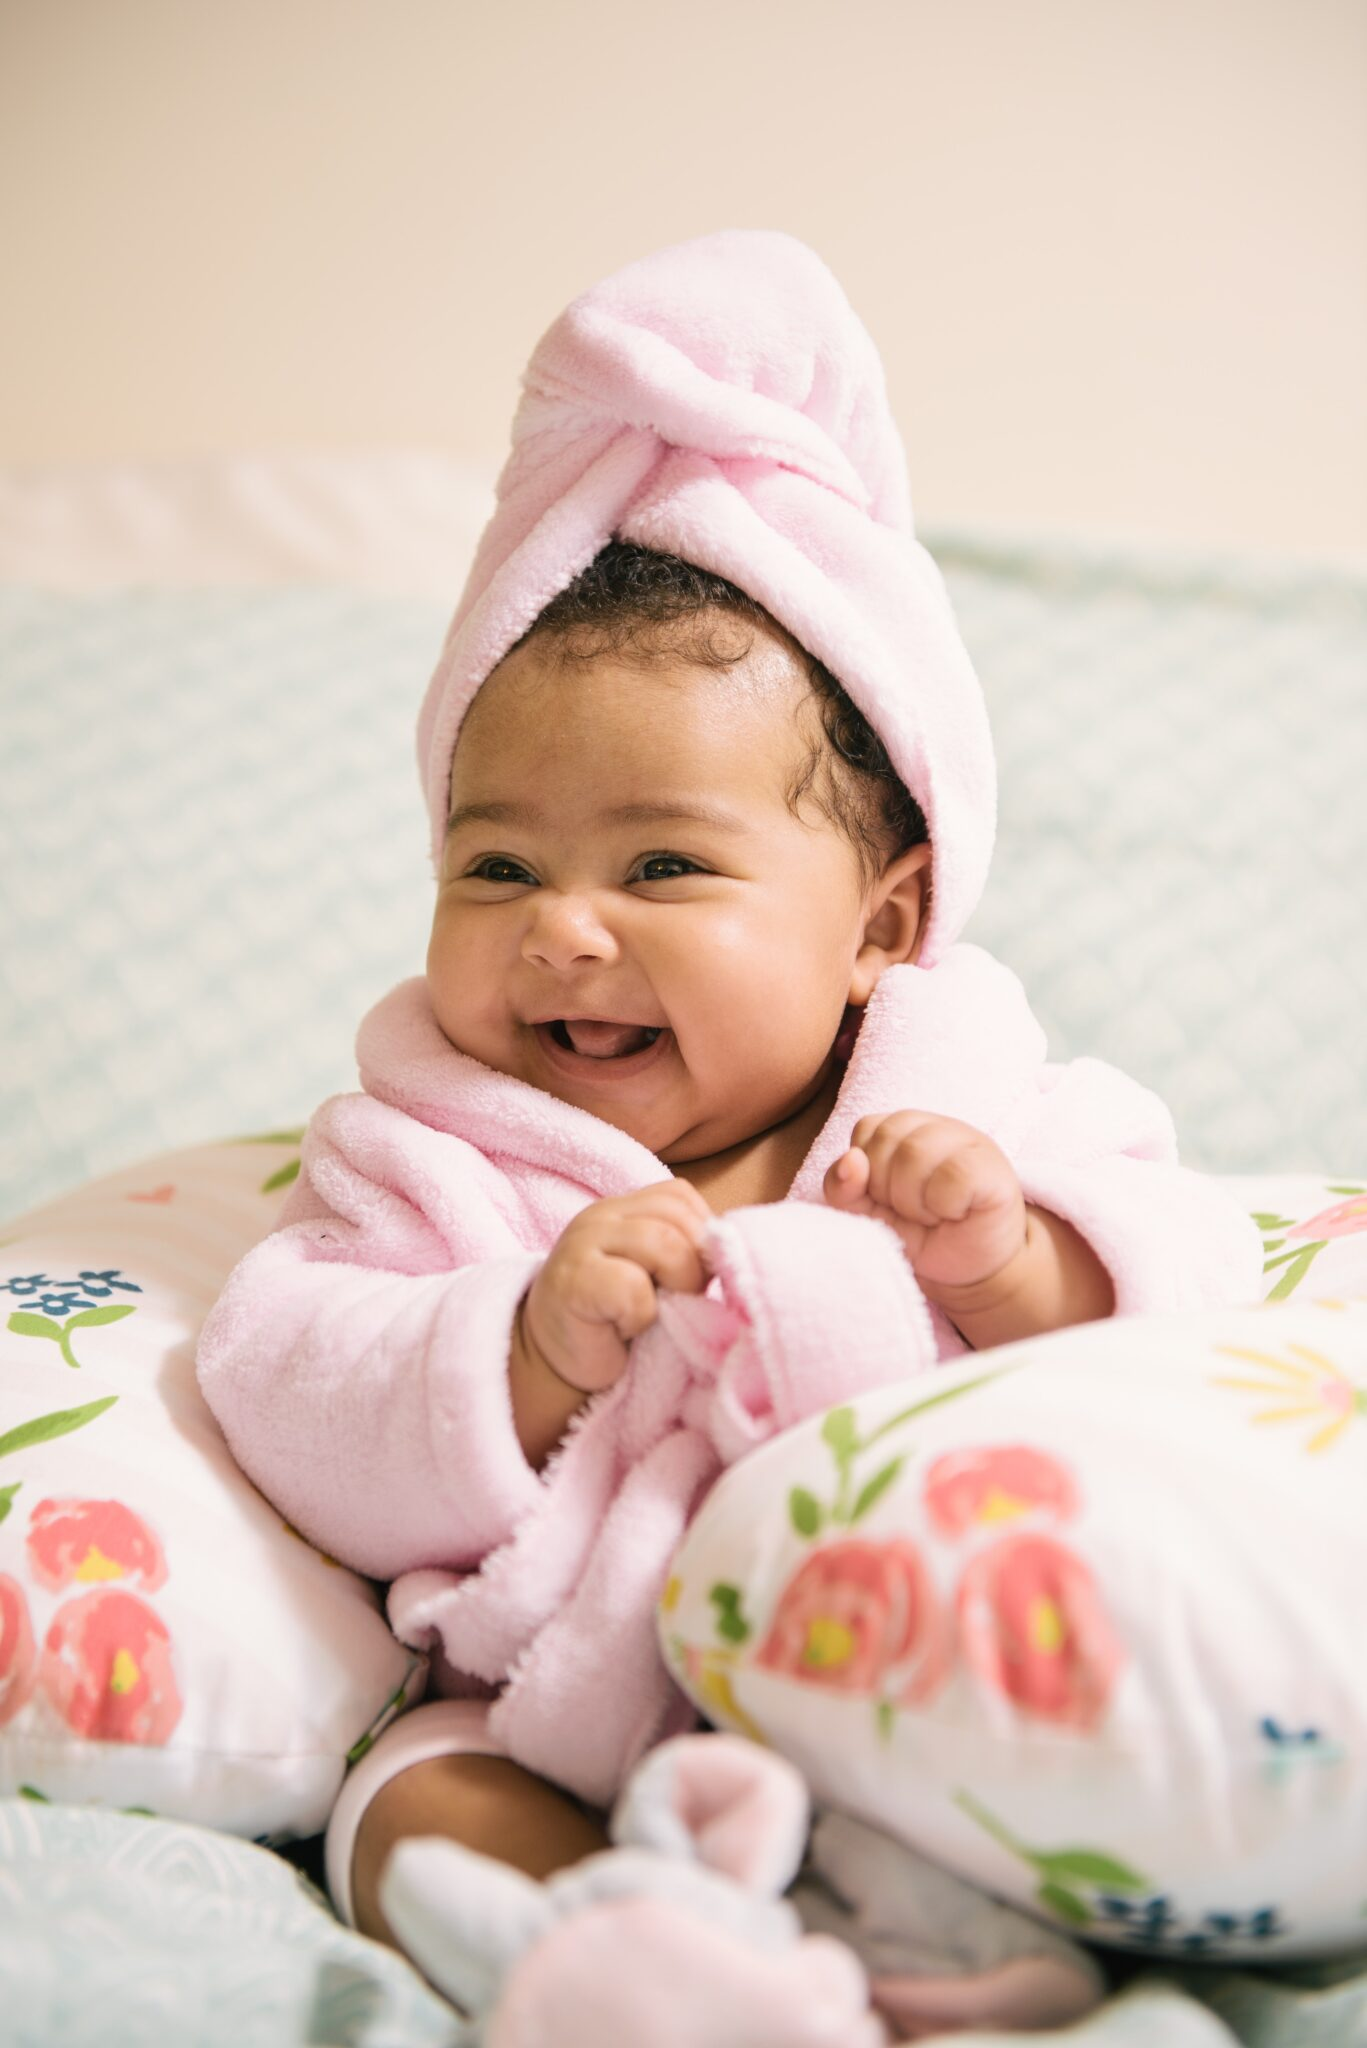 4 Tips for Baby-Proofing a New Home